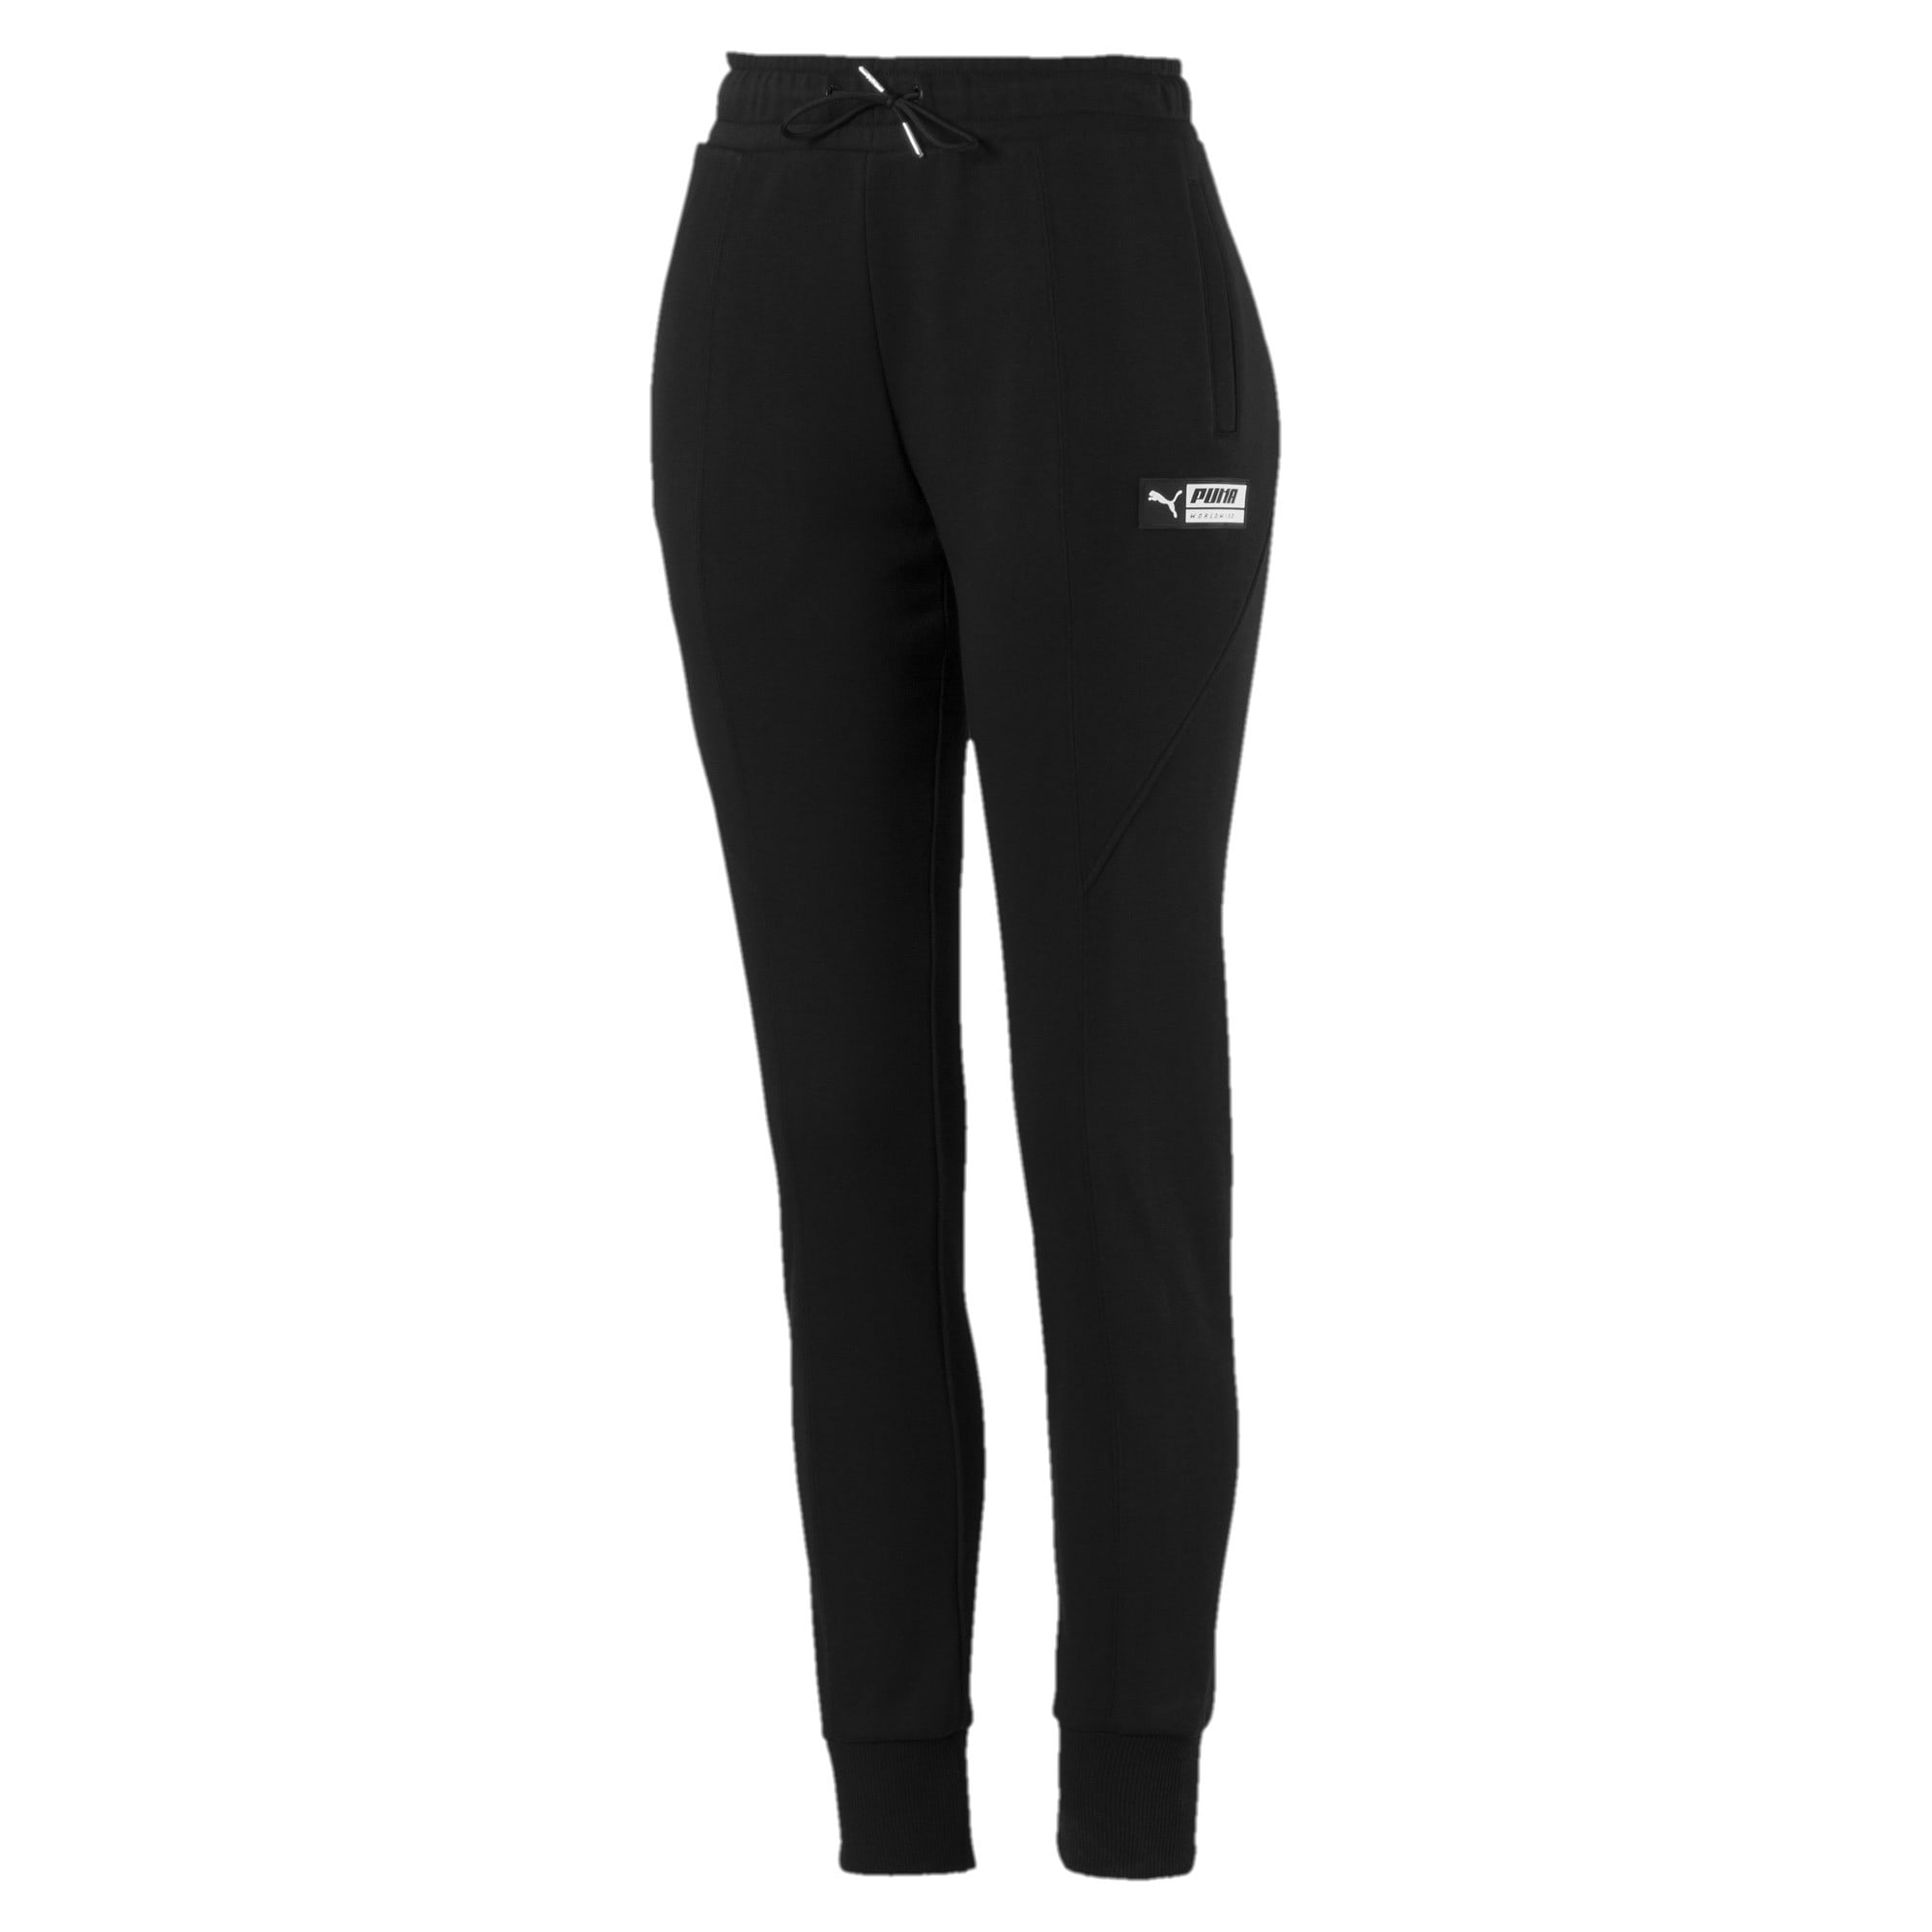 Thumbnail 4 of TZ Damen Trainingshose, Puma Black, medium